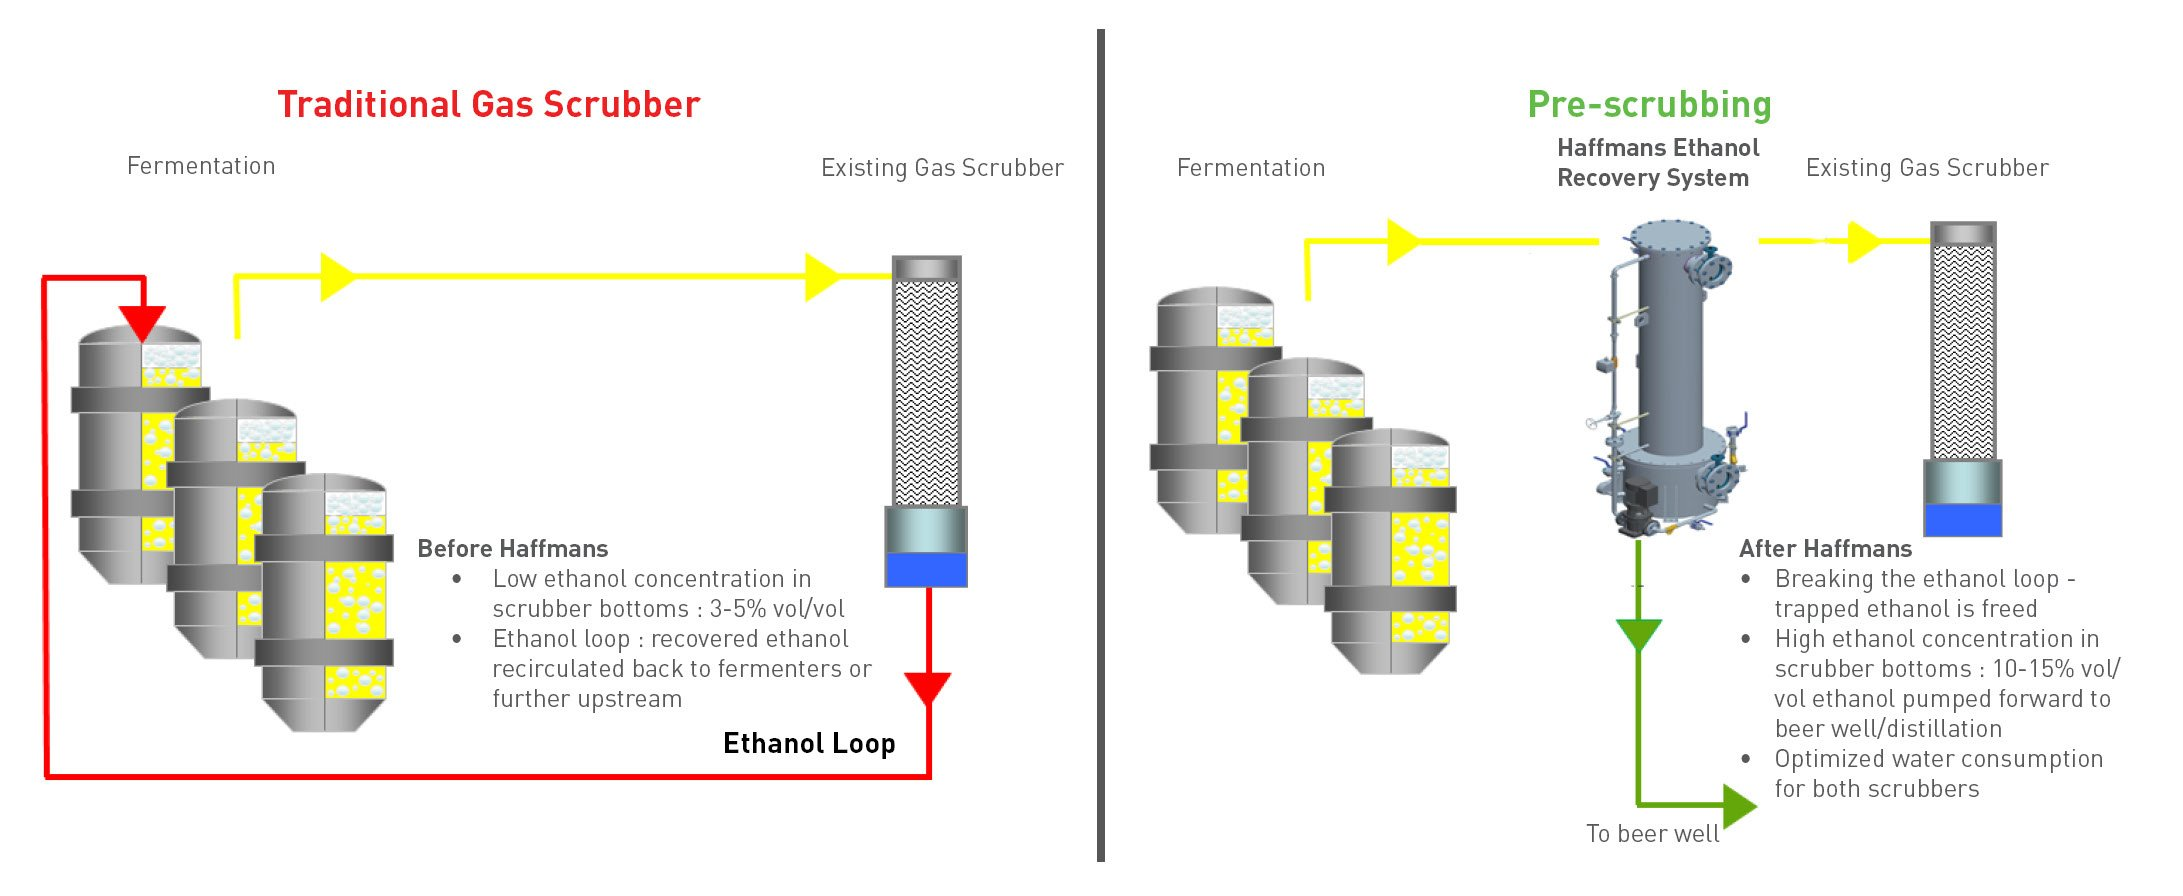 Bioethanol recovery - Infographic - Image 1